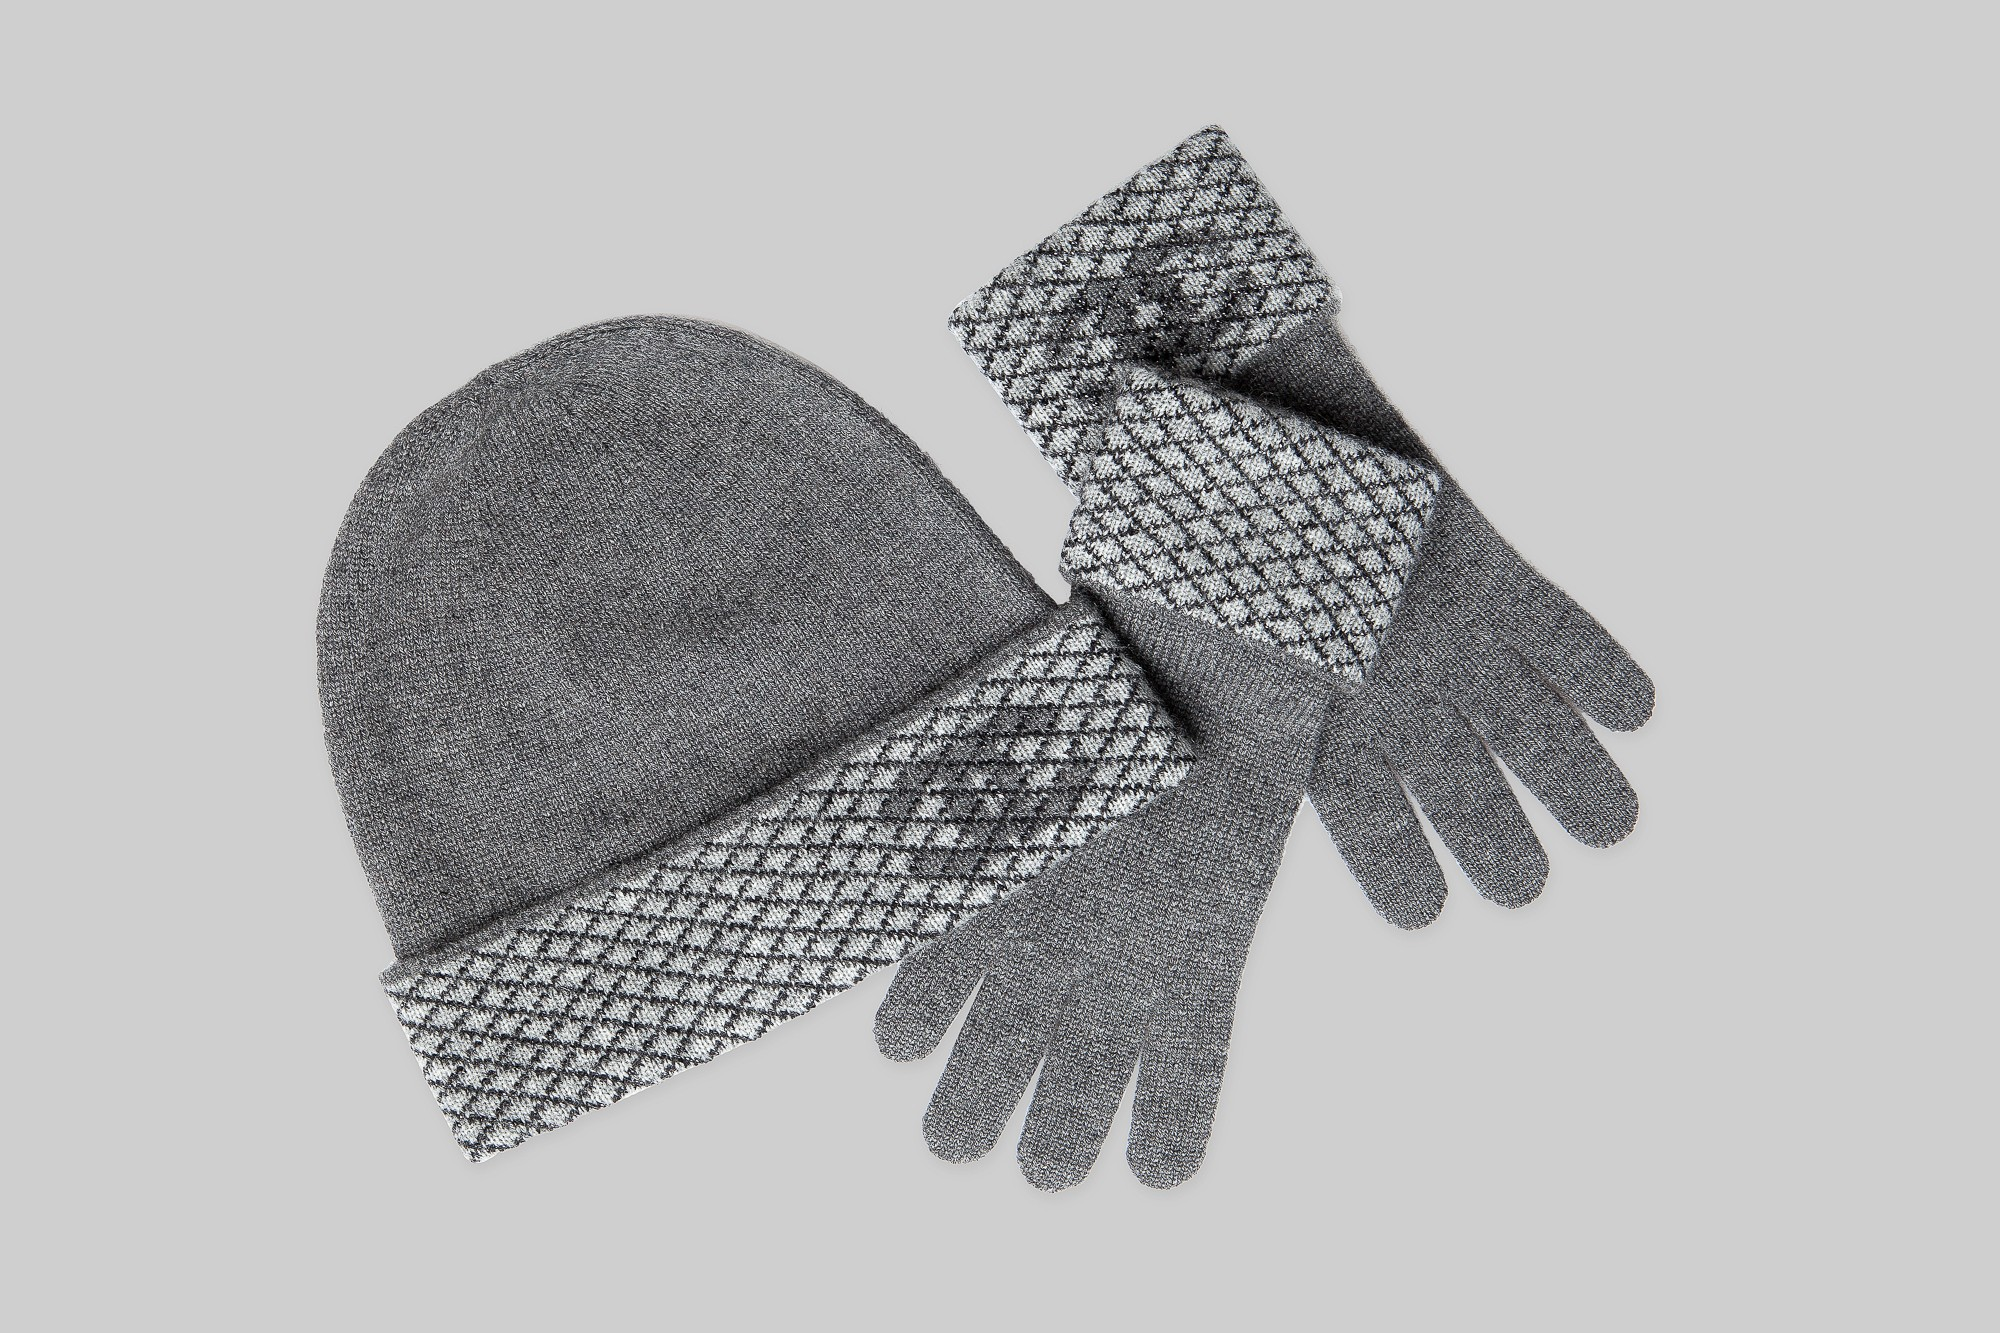 Grey cashmere hat, grey cashmere gloves CHANEL LINEA PIU LUXURY ITEMS